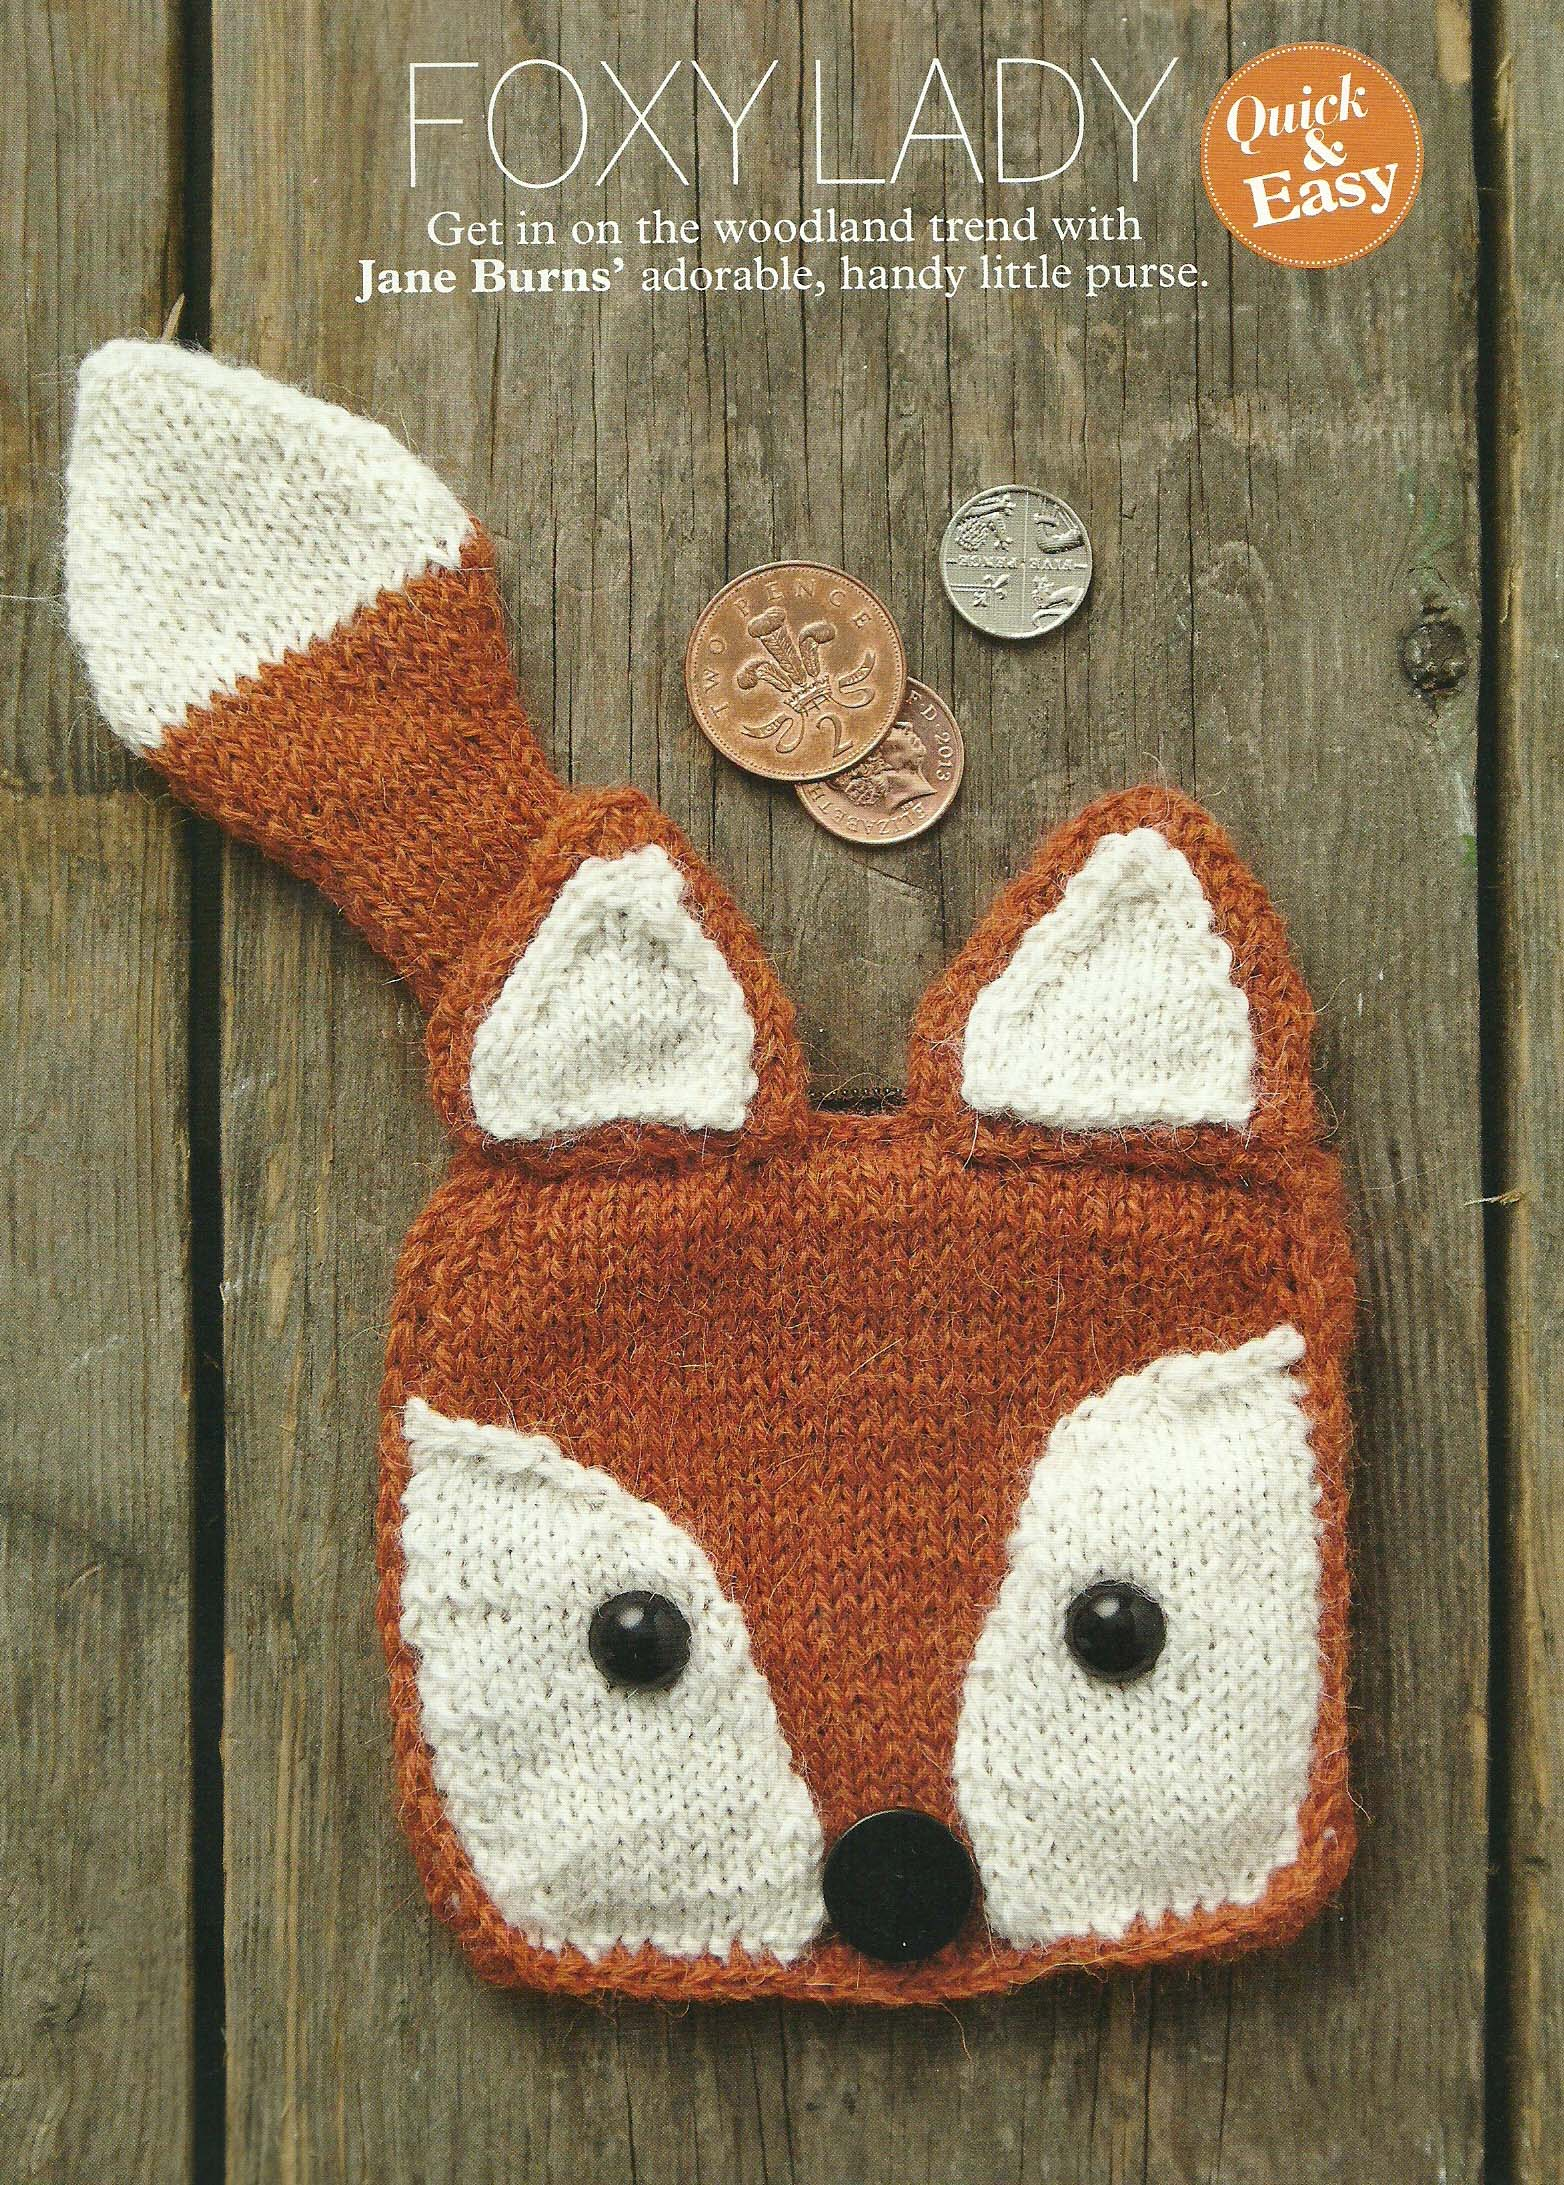 foxy lady purse simply knitting jane burns